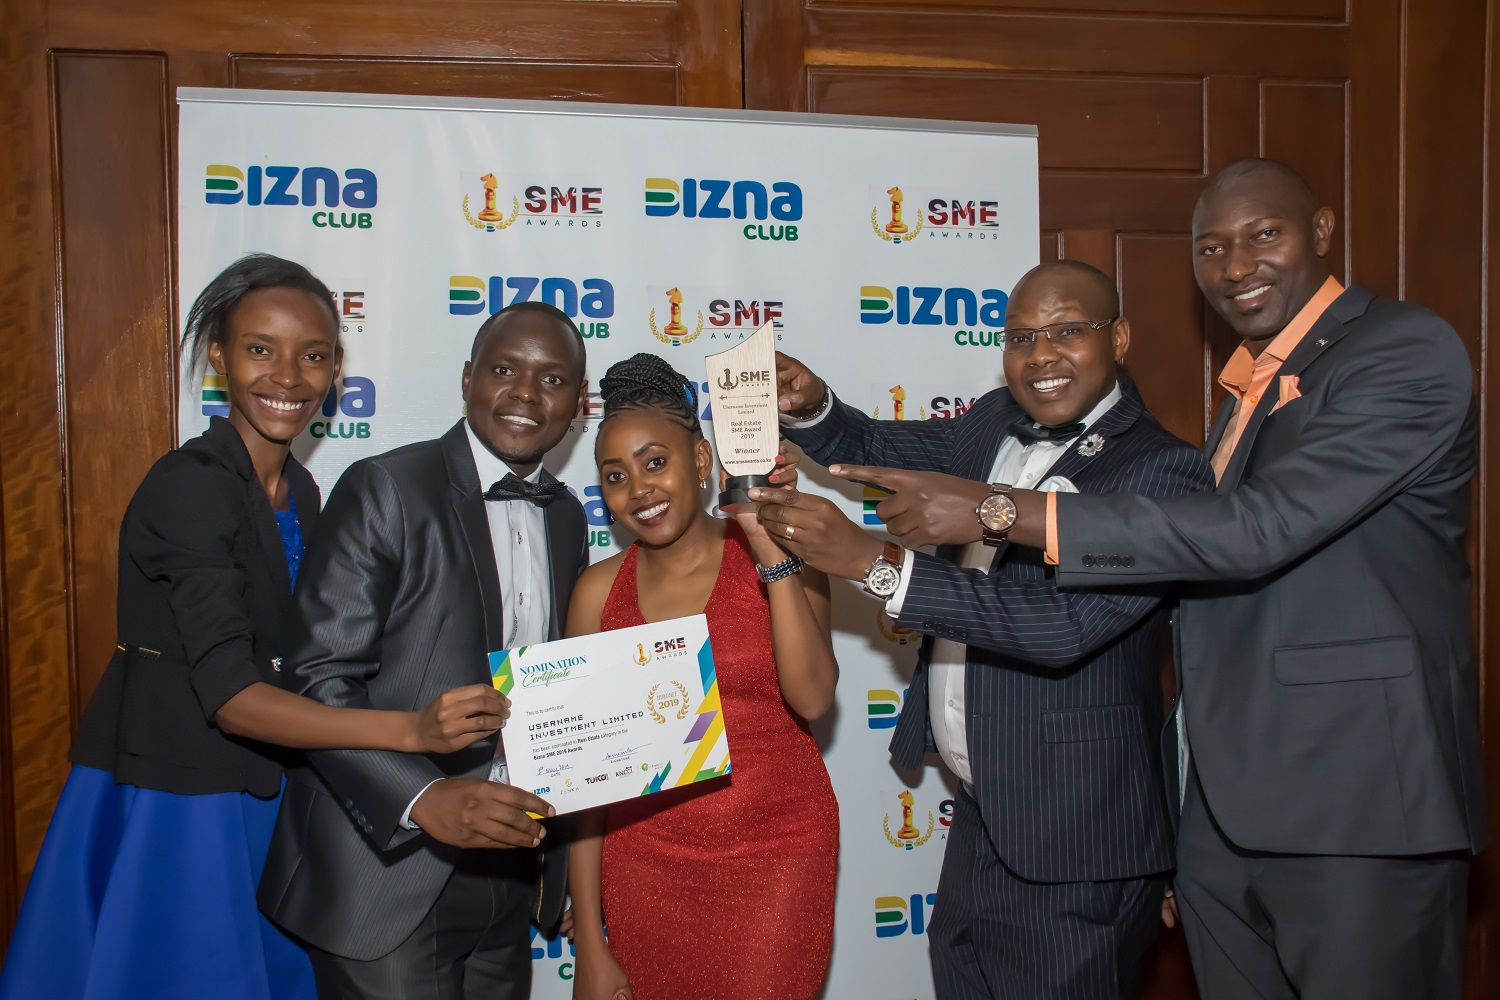 Username Investment Ltd. Team holding The Real Estate Company of the Year trophy won at the 2019 Bizna SME Awards